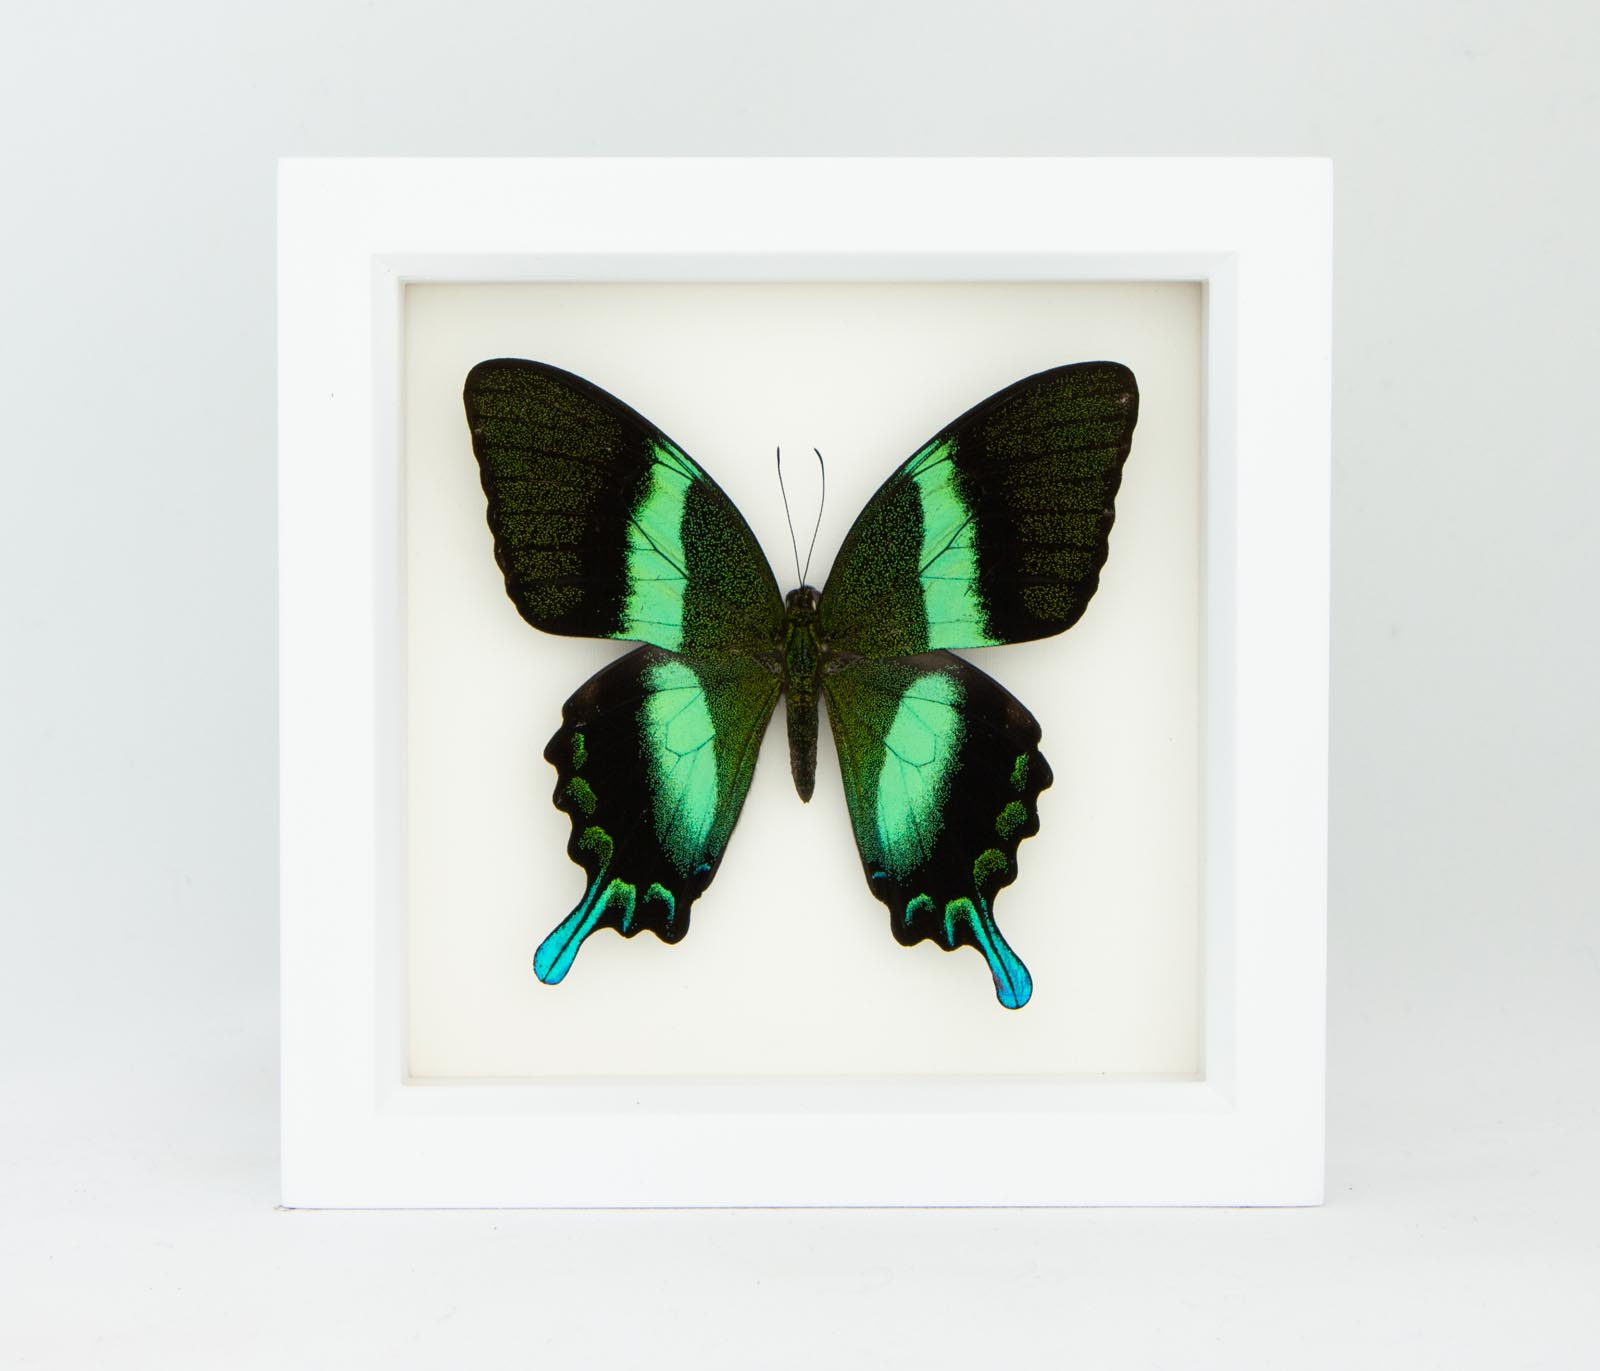 Framed Peacock Swallowtail Papilio Blumei Bug Under Glass